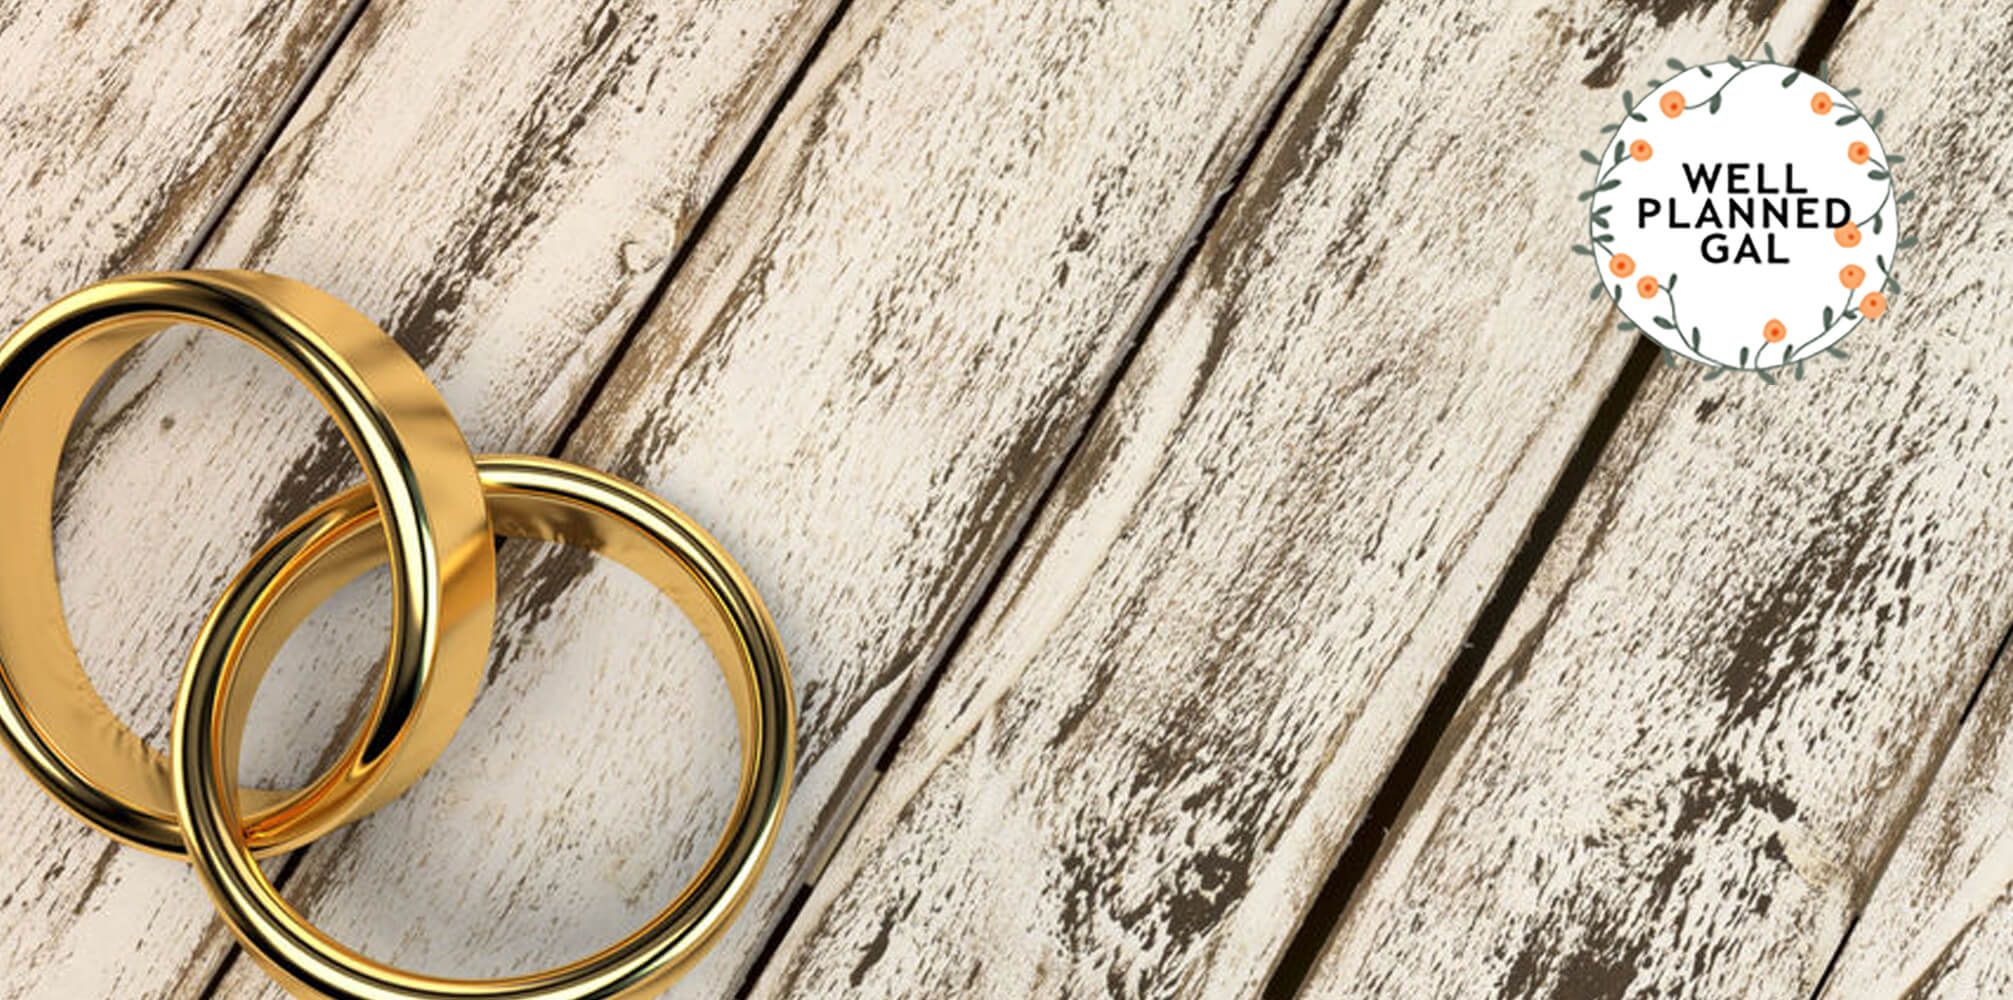 preparation for marriage Preparation for marriage class this one day class satisfies the pre-marital counseling requirements for duval, clay, and st johns counties as well as christ's church.